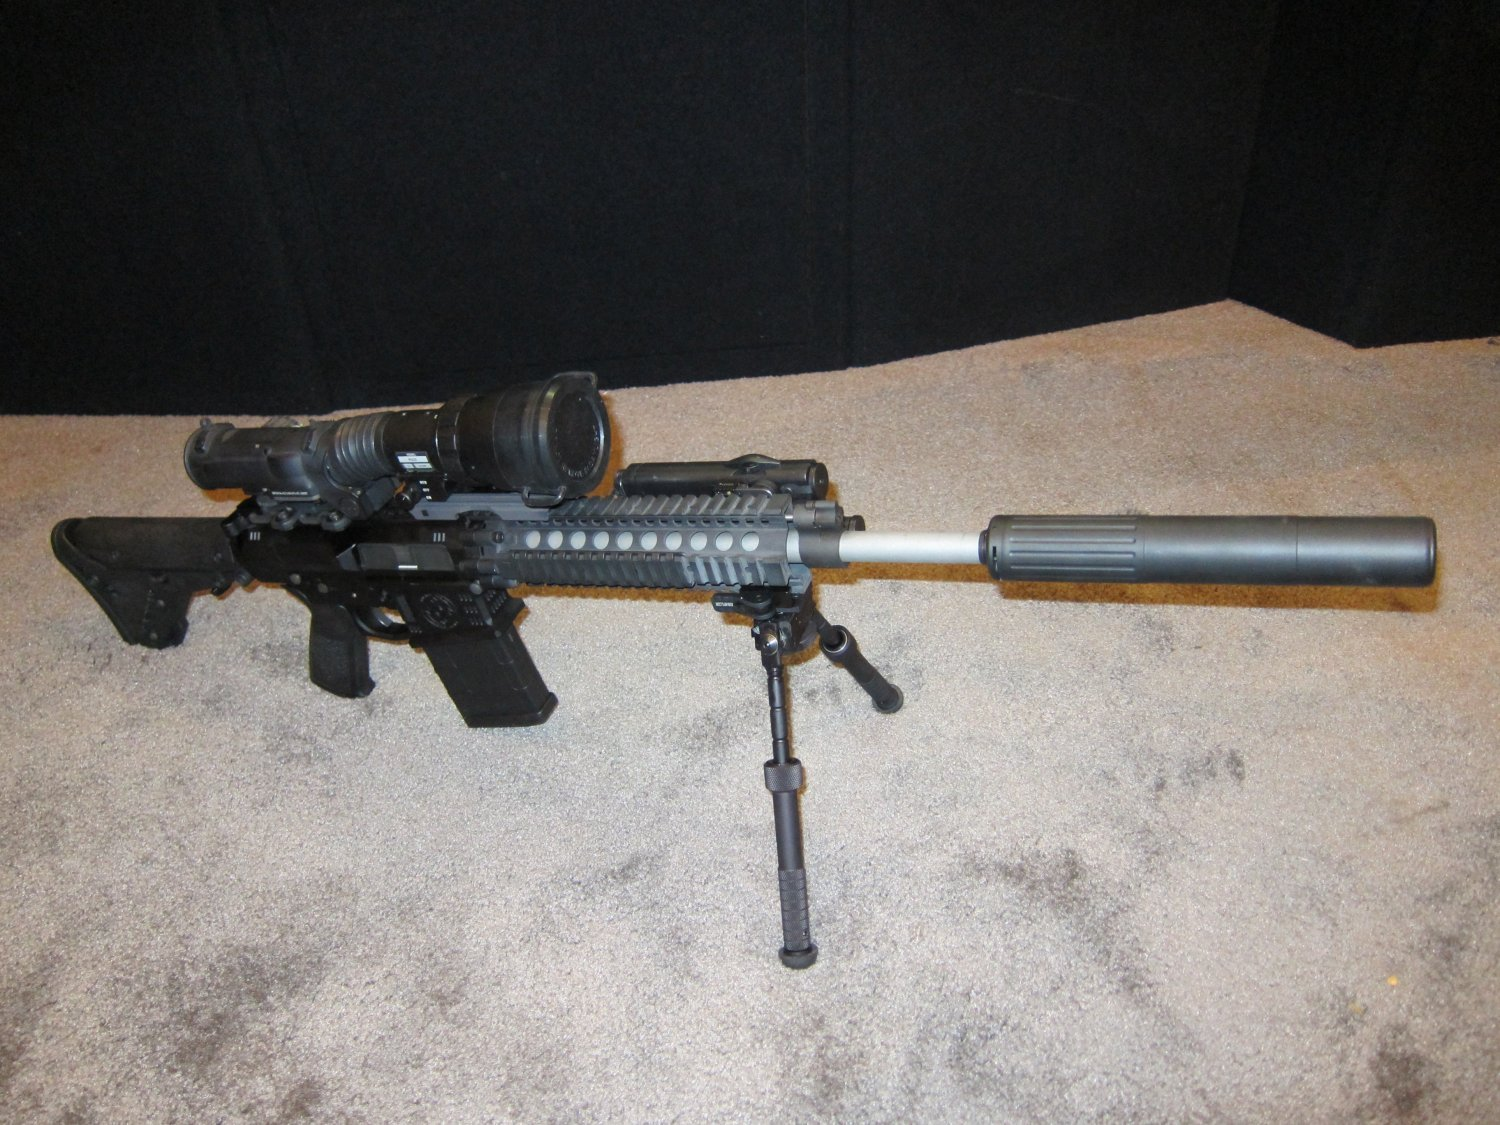 SHOT Show 2010 Iron Ridge Arms IRA 7.62mm AR Rifle Carbine 4 <!  :en  >Iron Ridge Arms IRA X (formerly IRA 10) Complete Sniper Rifle/Battle Rifle: This time, Thors hammer takes the form a 7.62mm/.308 tactical AR sniper rifle/carbine.<!  :  >